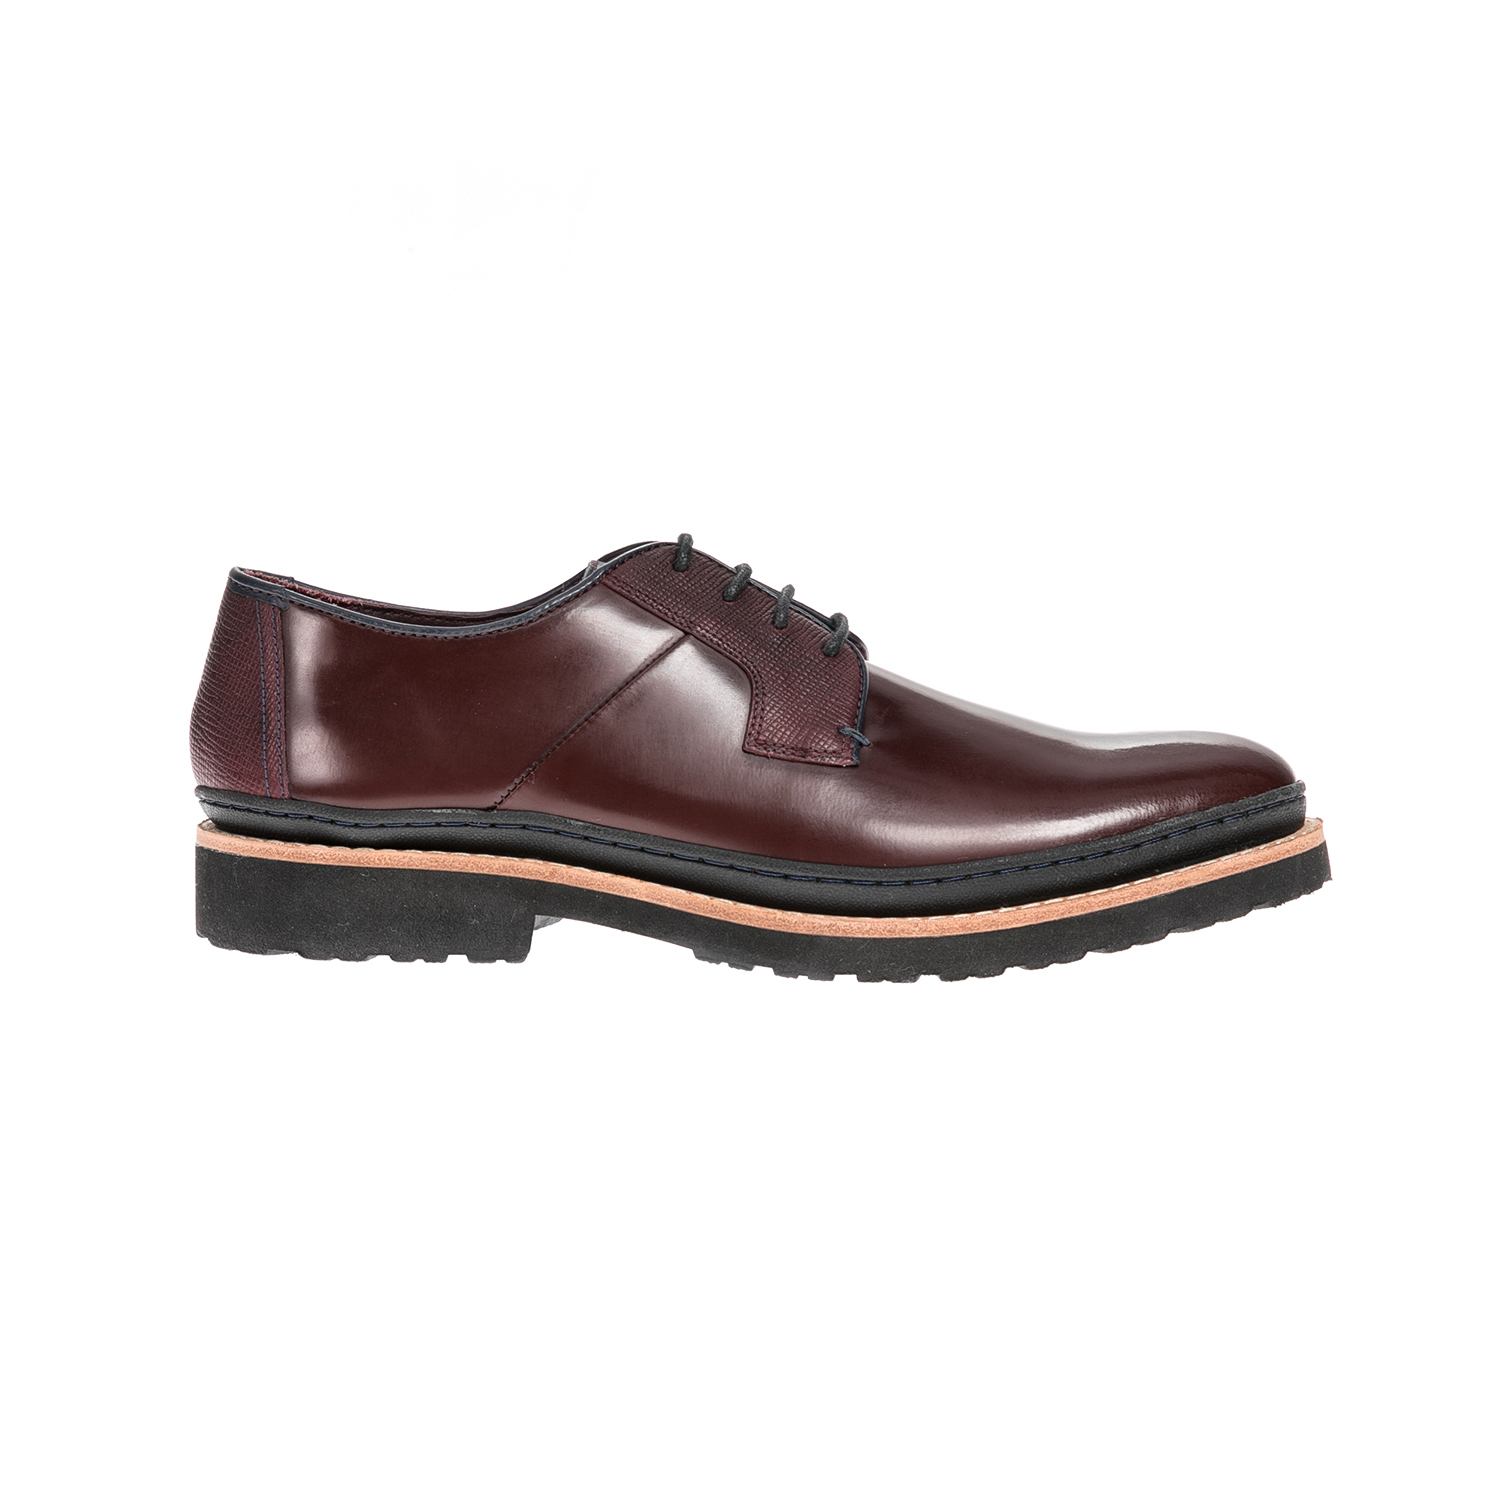 TED BAKER – Αντρικά παπούτσια TED BAKER καφέ